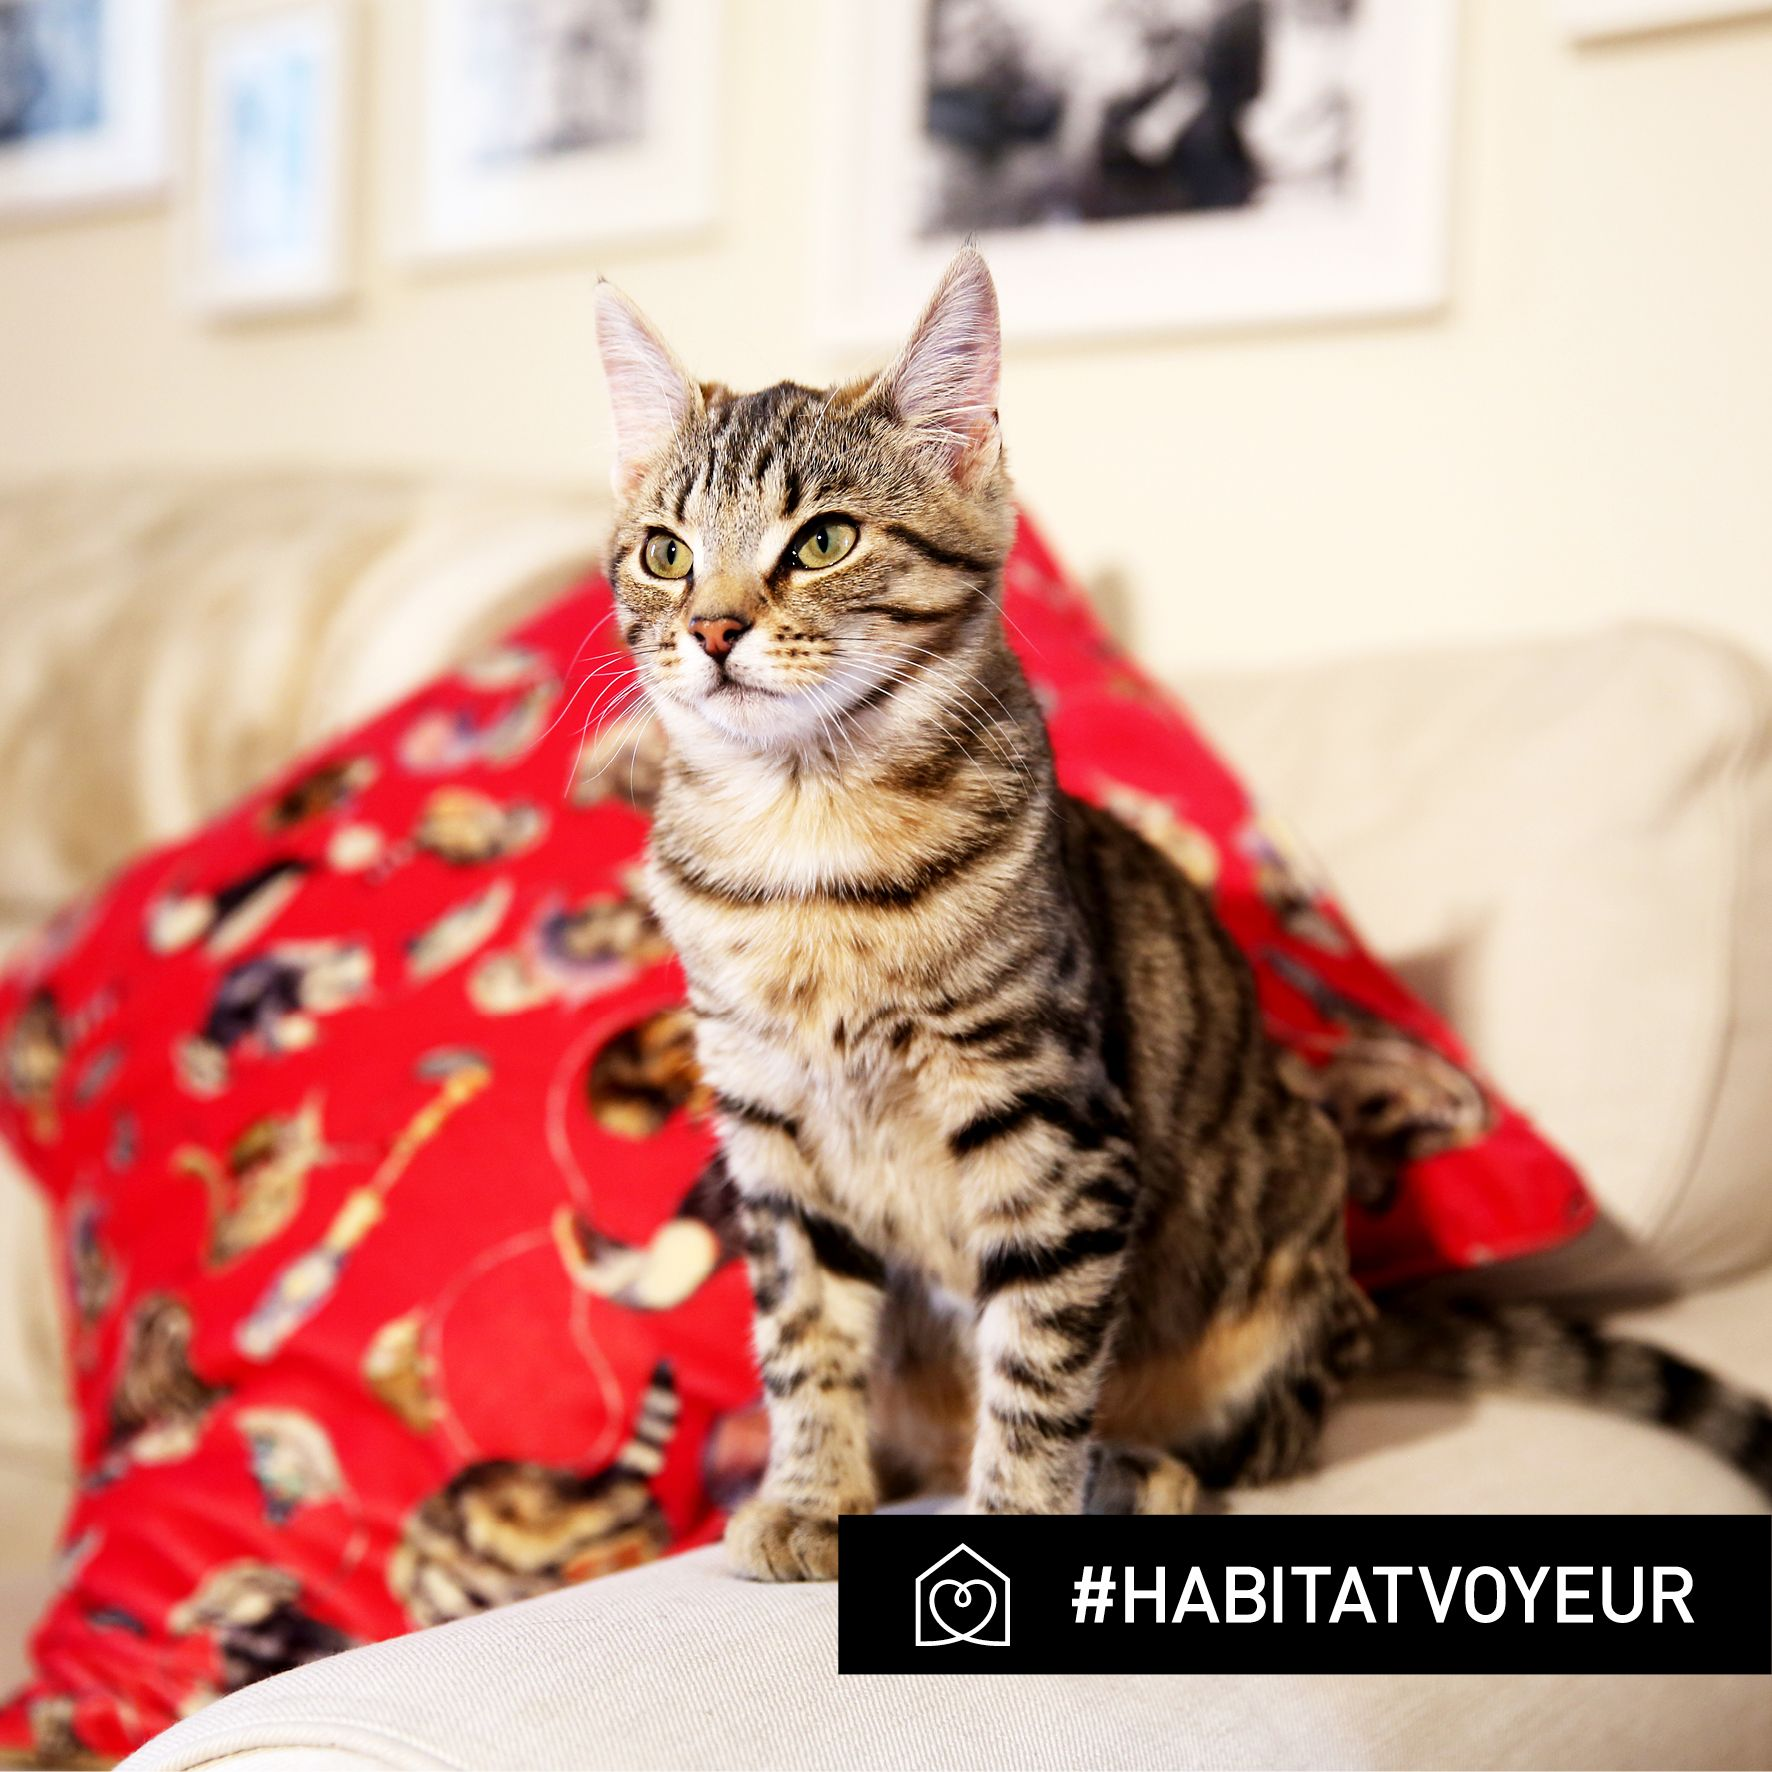 Pandora Sykes is Fashion Features Editor and Wardrobe Mistress at The Sunday Times Style. She lives in Notting Hill with her fiancée, flatmate and their kitten, Indi. Take a sneak peek around her home...#HabitatVoyeur